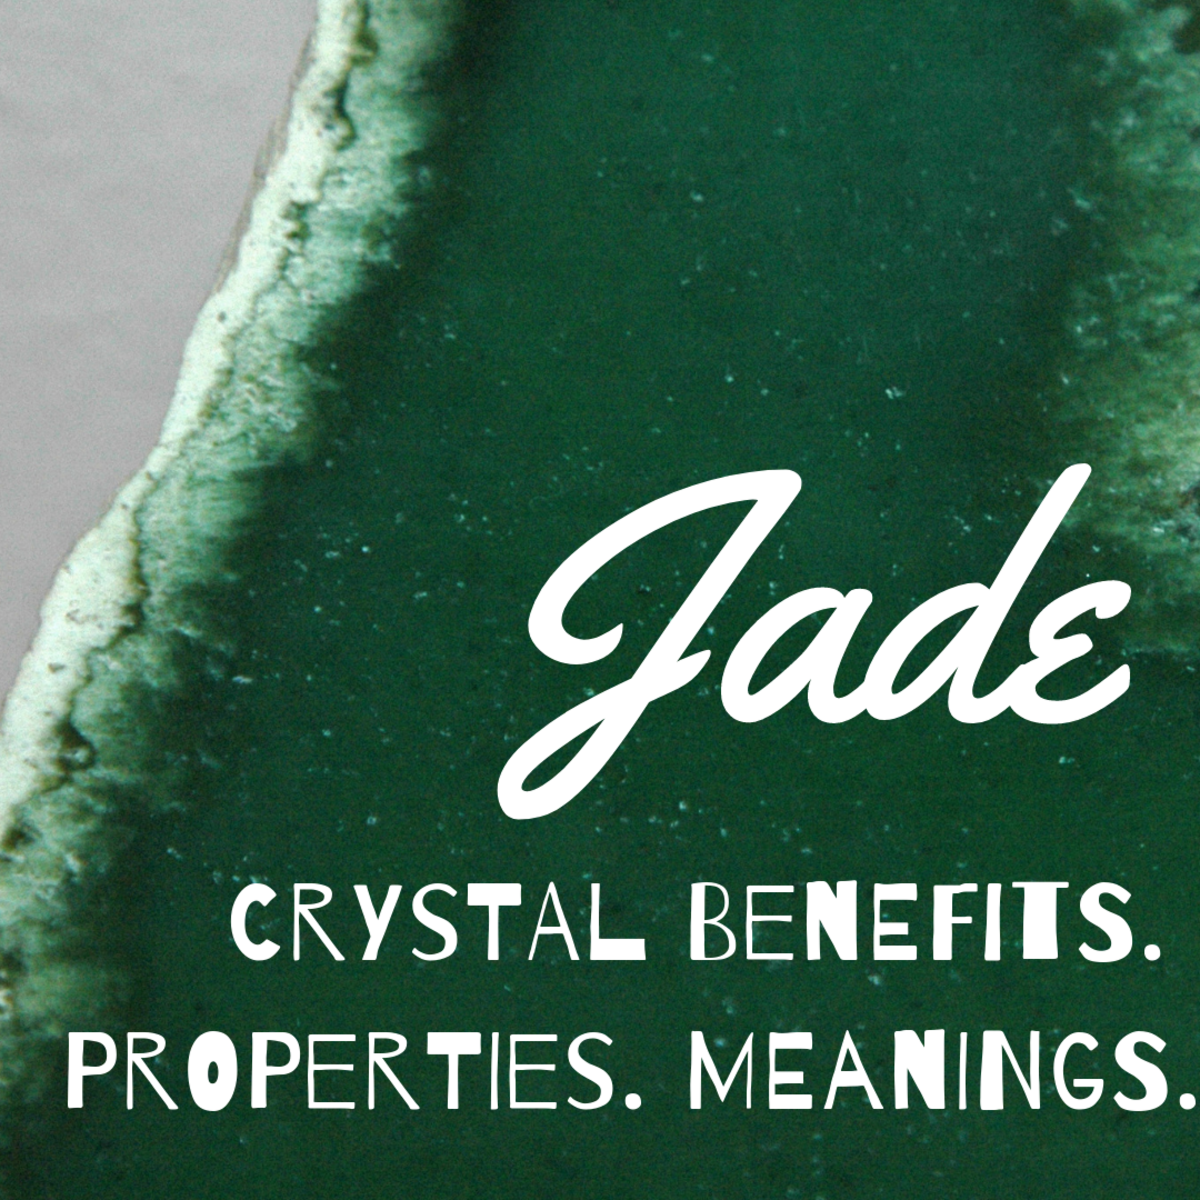 Green Jade Stone Benefits, Properties, and Meaning